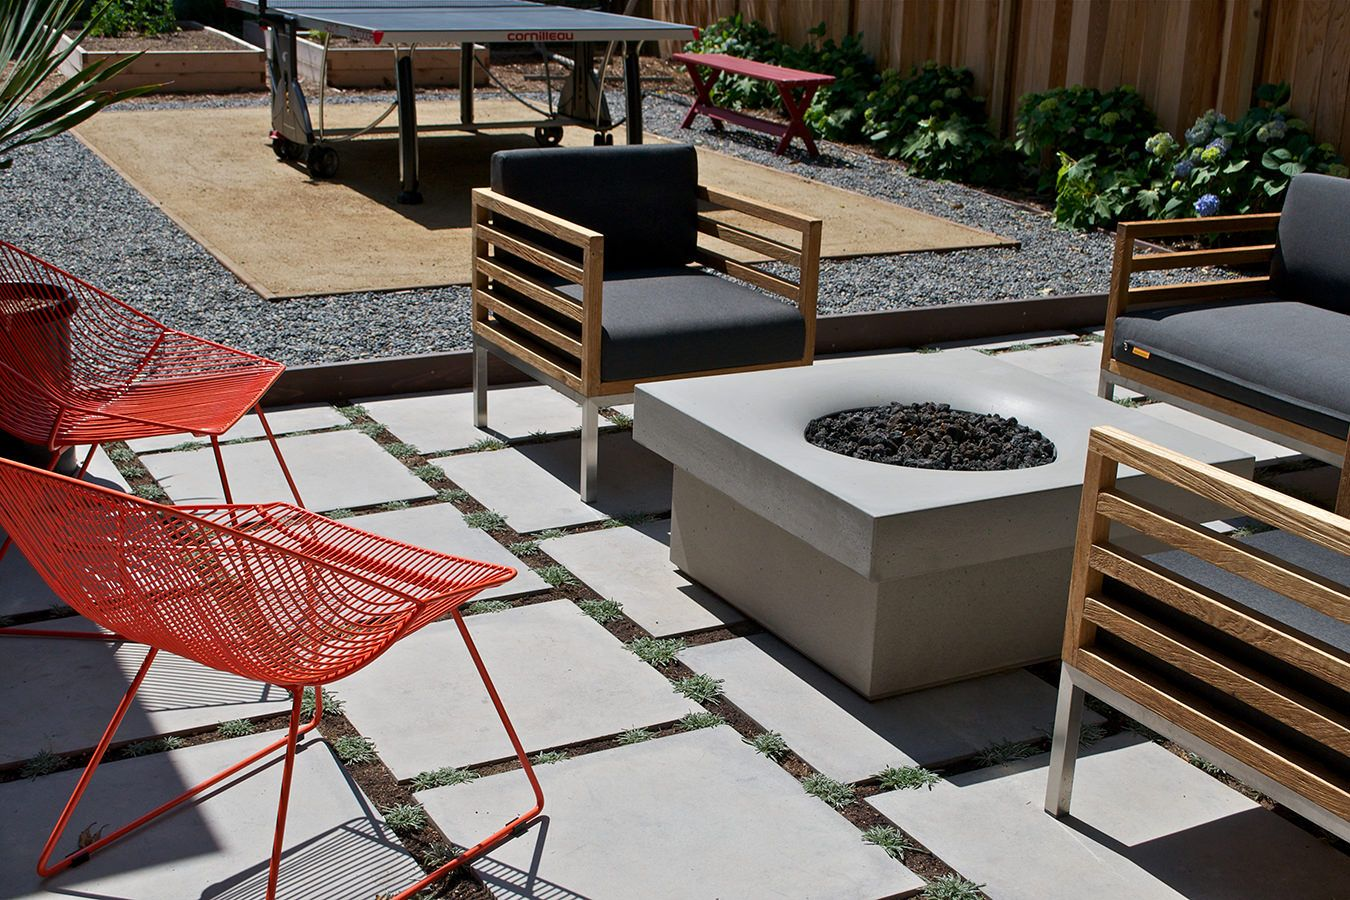 Ping Pong Court Design Fire Pit Solus Decor Vancouver Canada